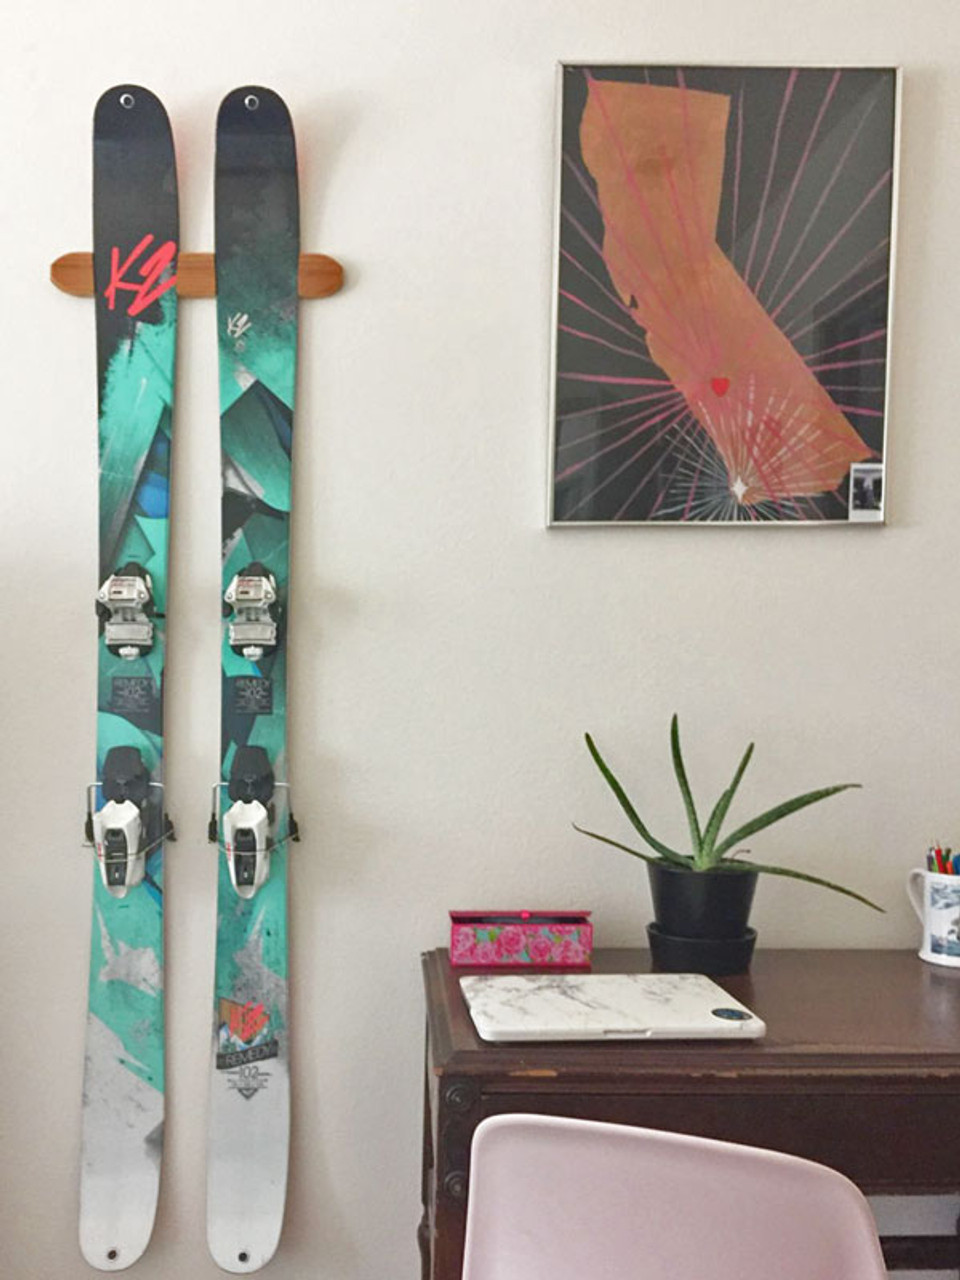 wall hanger display for skis